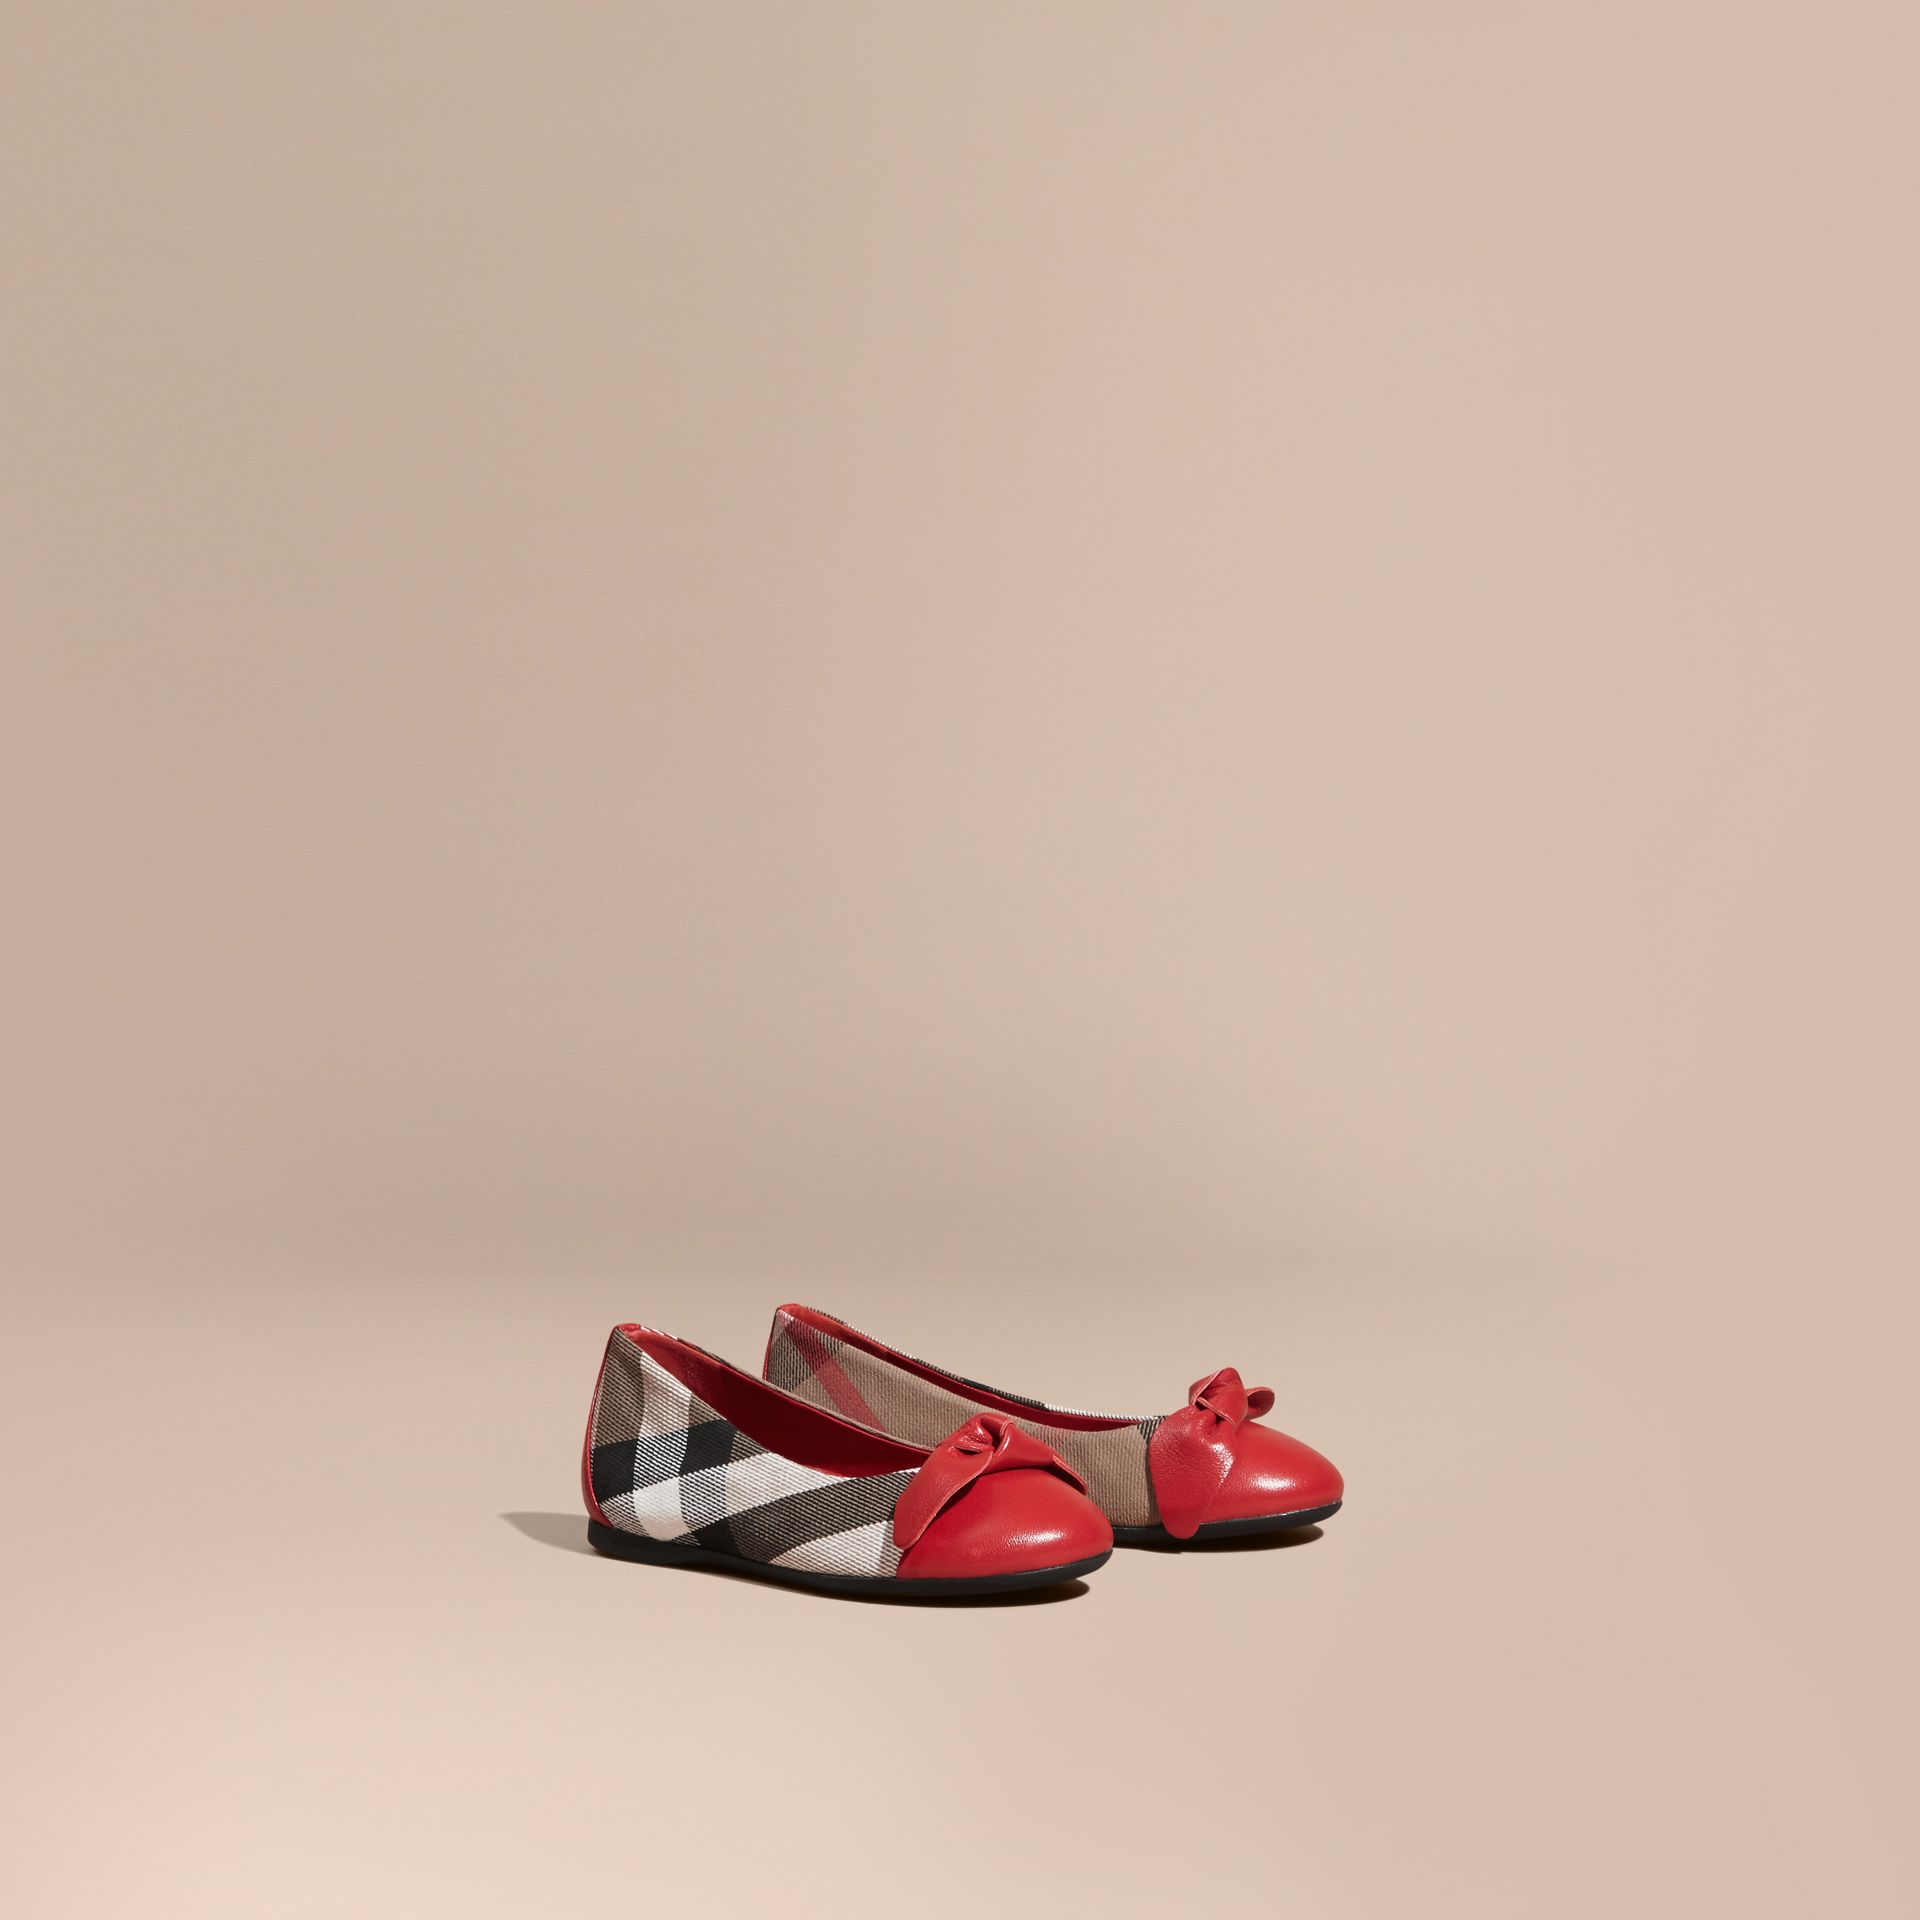 Ballerines en cuir et coton House check (Rouge Parade) - Fille | Burberry - photo de la galerie 1